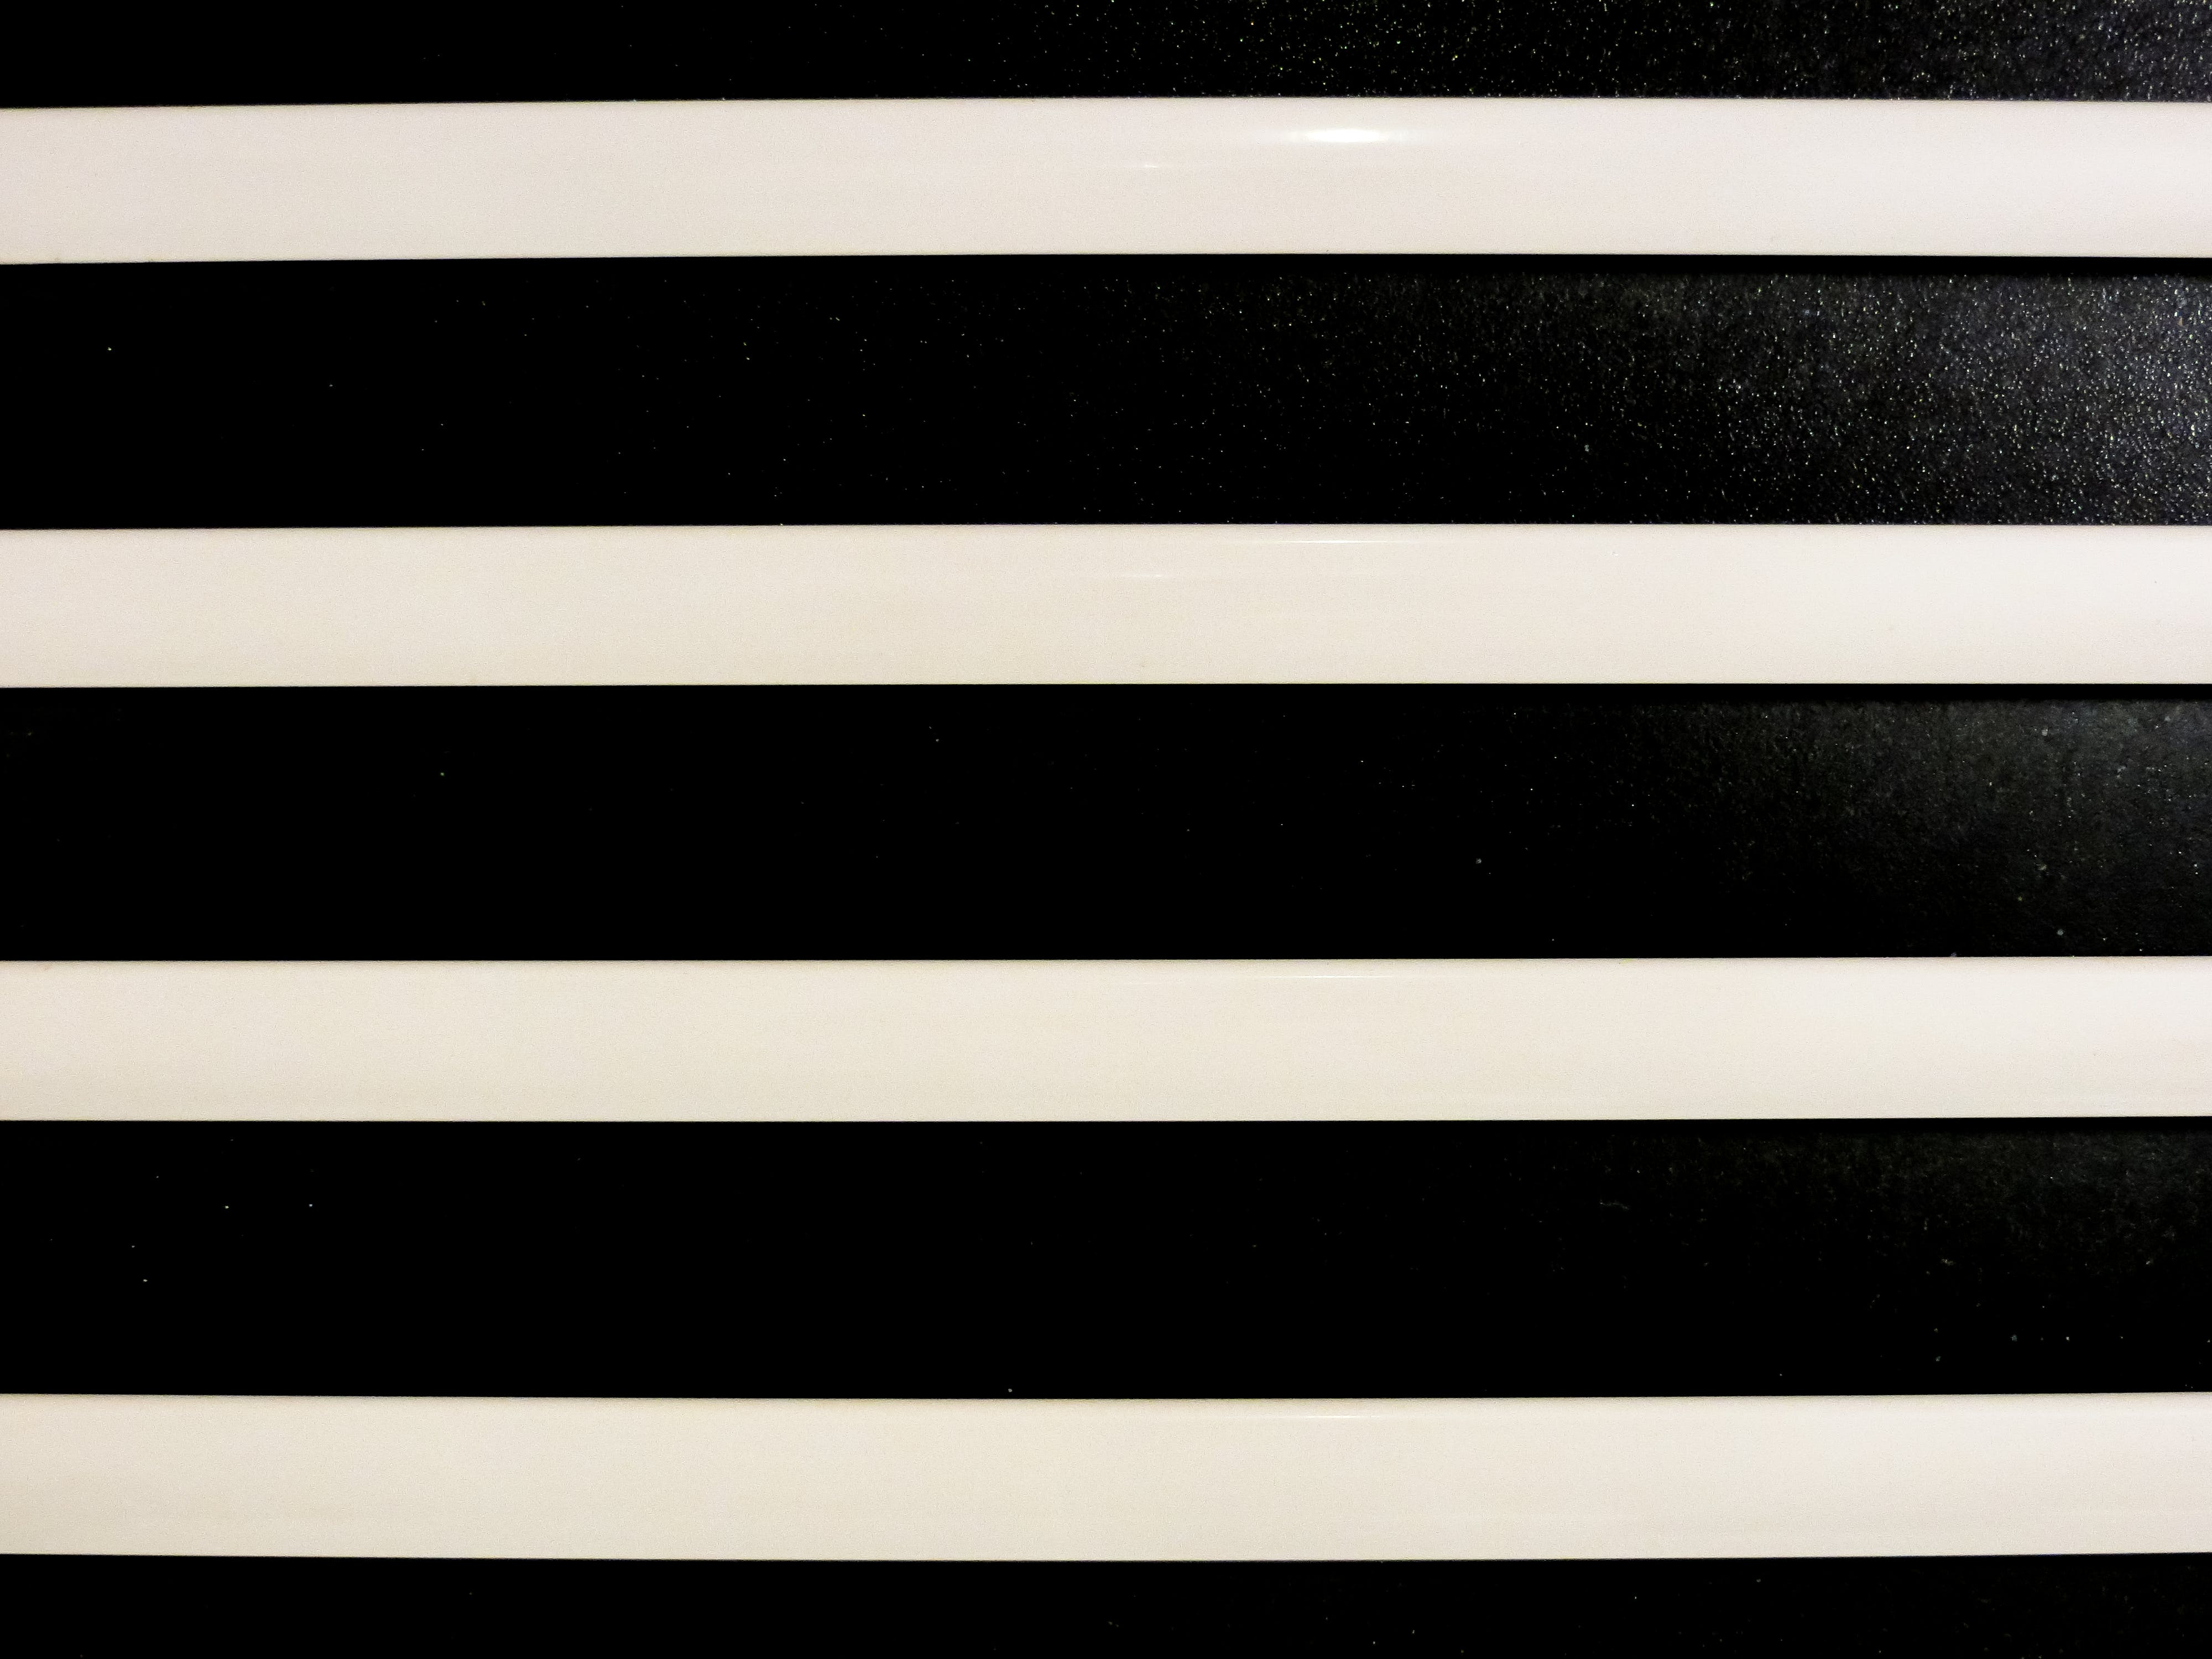 Free stock photo of texture, stripes, background, black and white